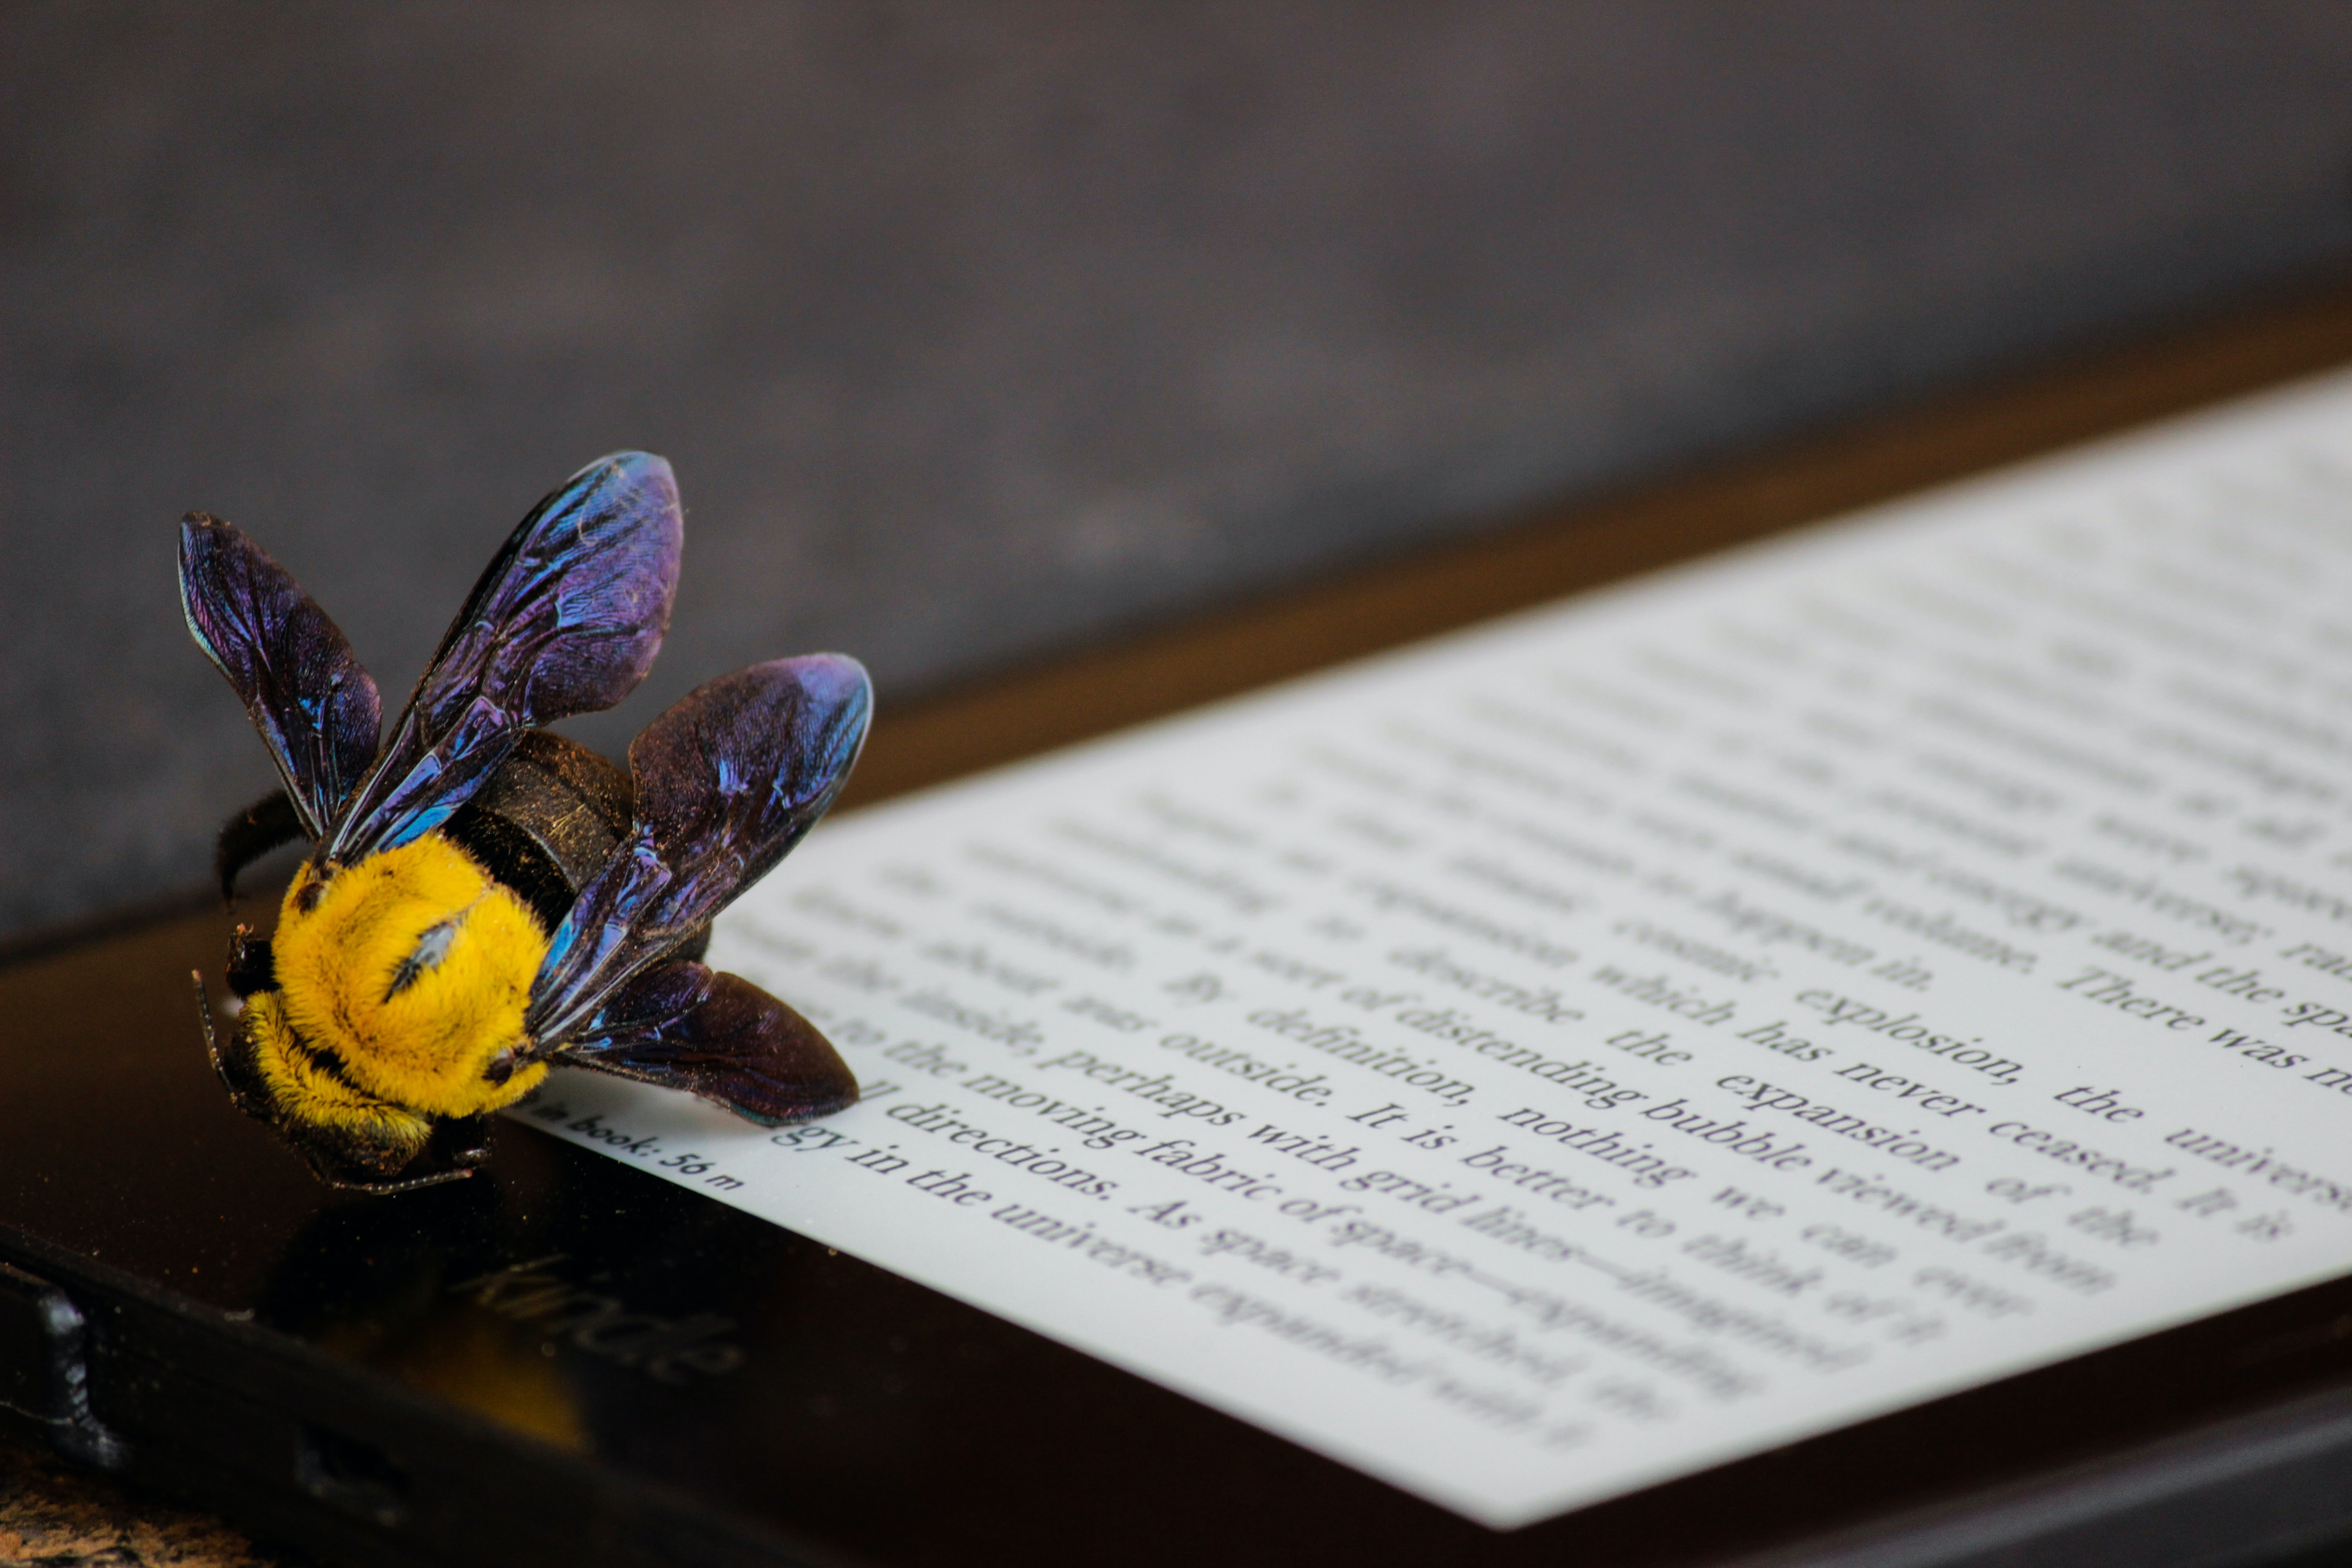 yellow and purple bumble bee on Kindle E-book reader